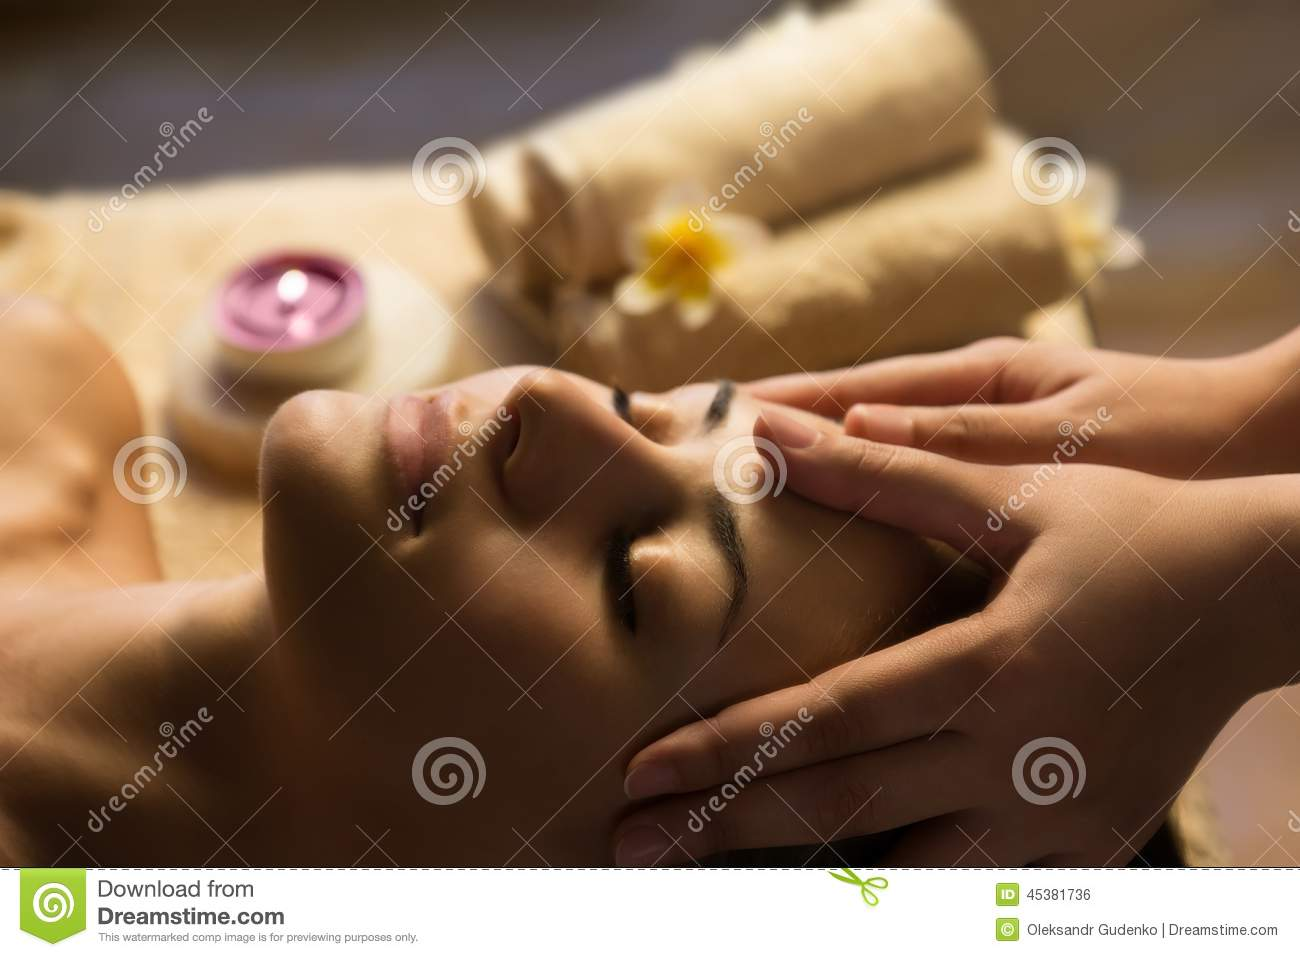 Facial SPA massage